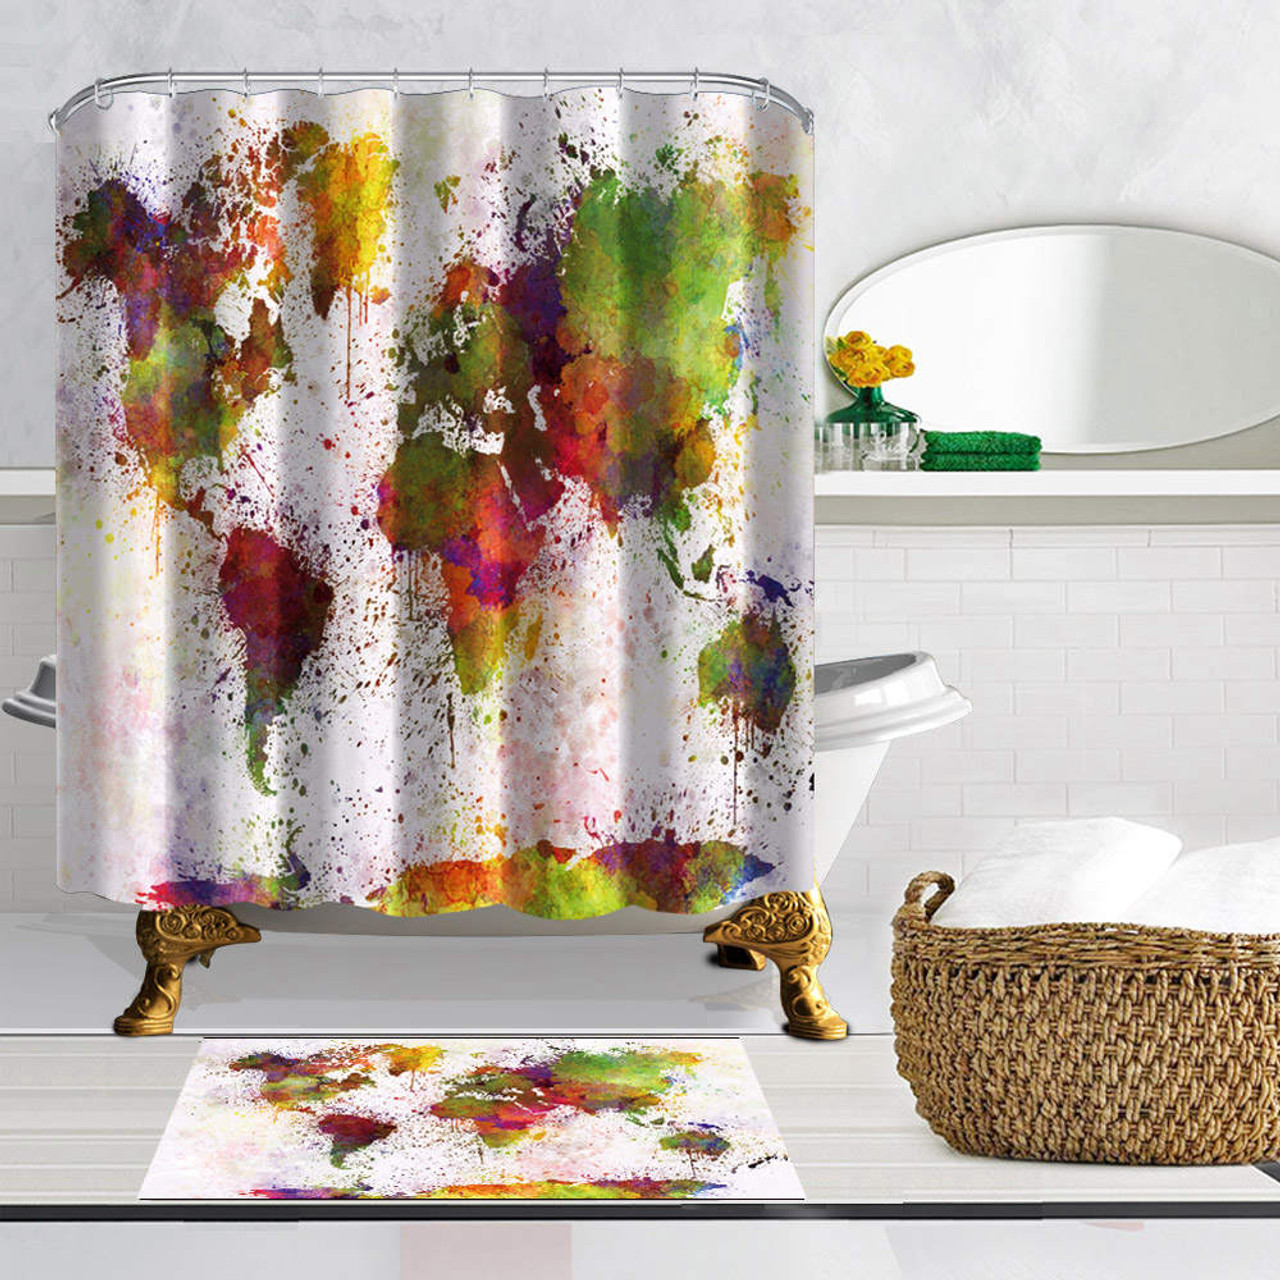 watercolor world map shower curtains art creative design waterproof mildew proof polyester fabric with 12 hooks bathroom curtain